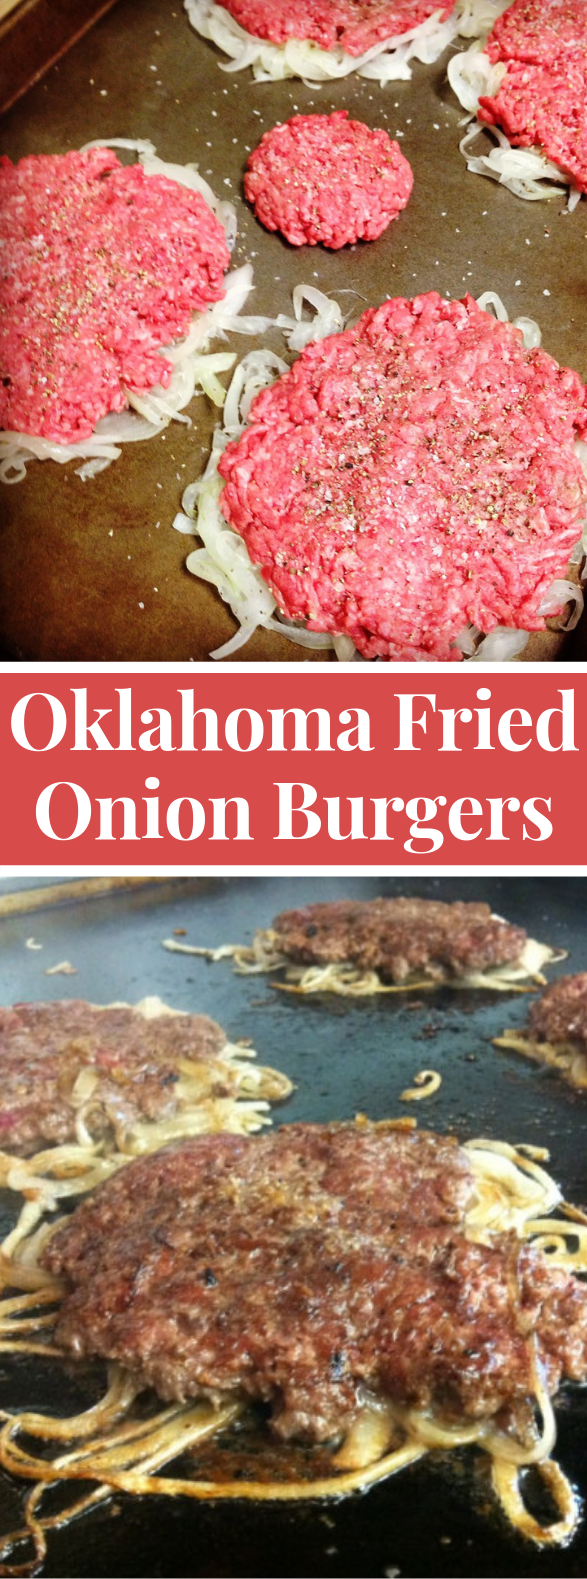 Oklahoma Fried Onion Burgers #dinner #easyrecipe